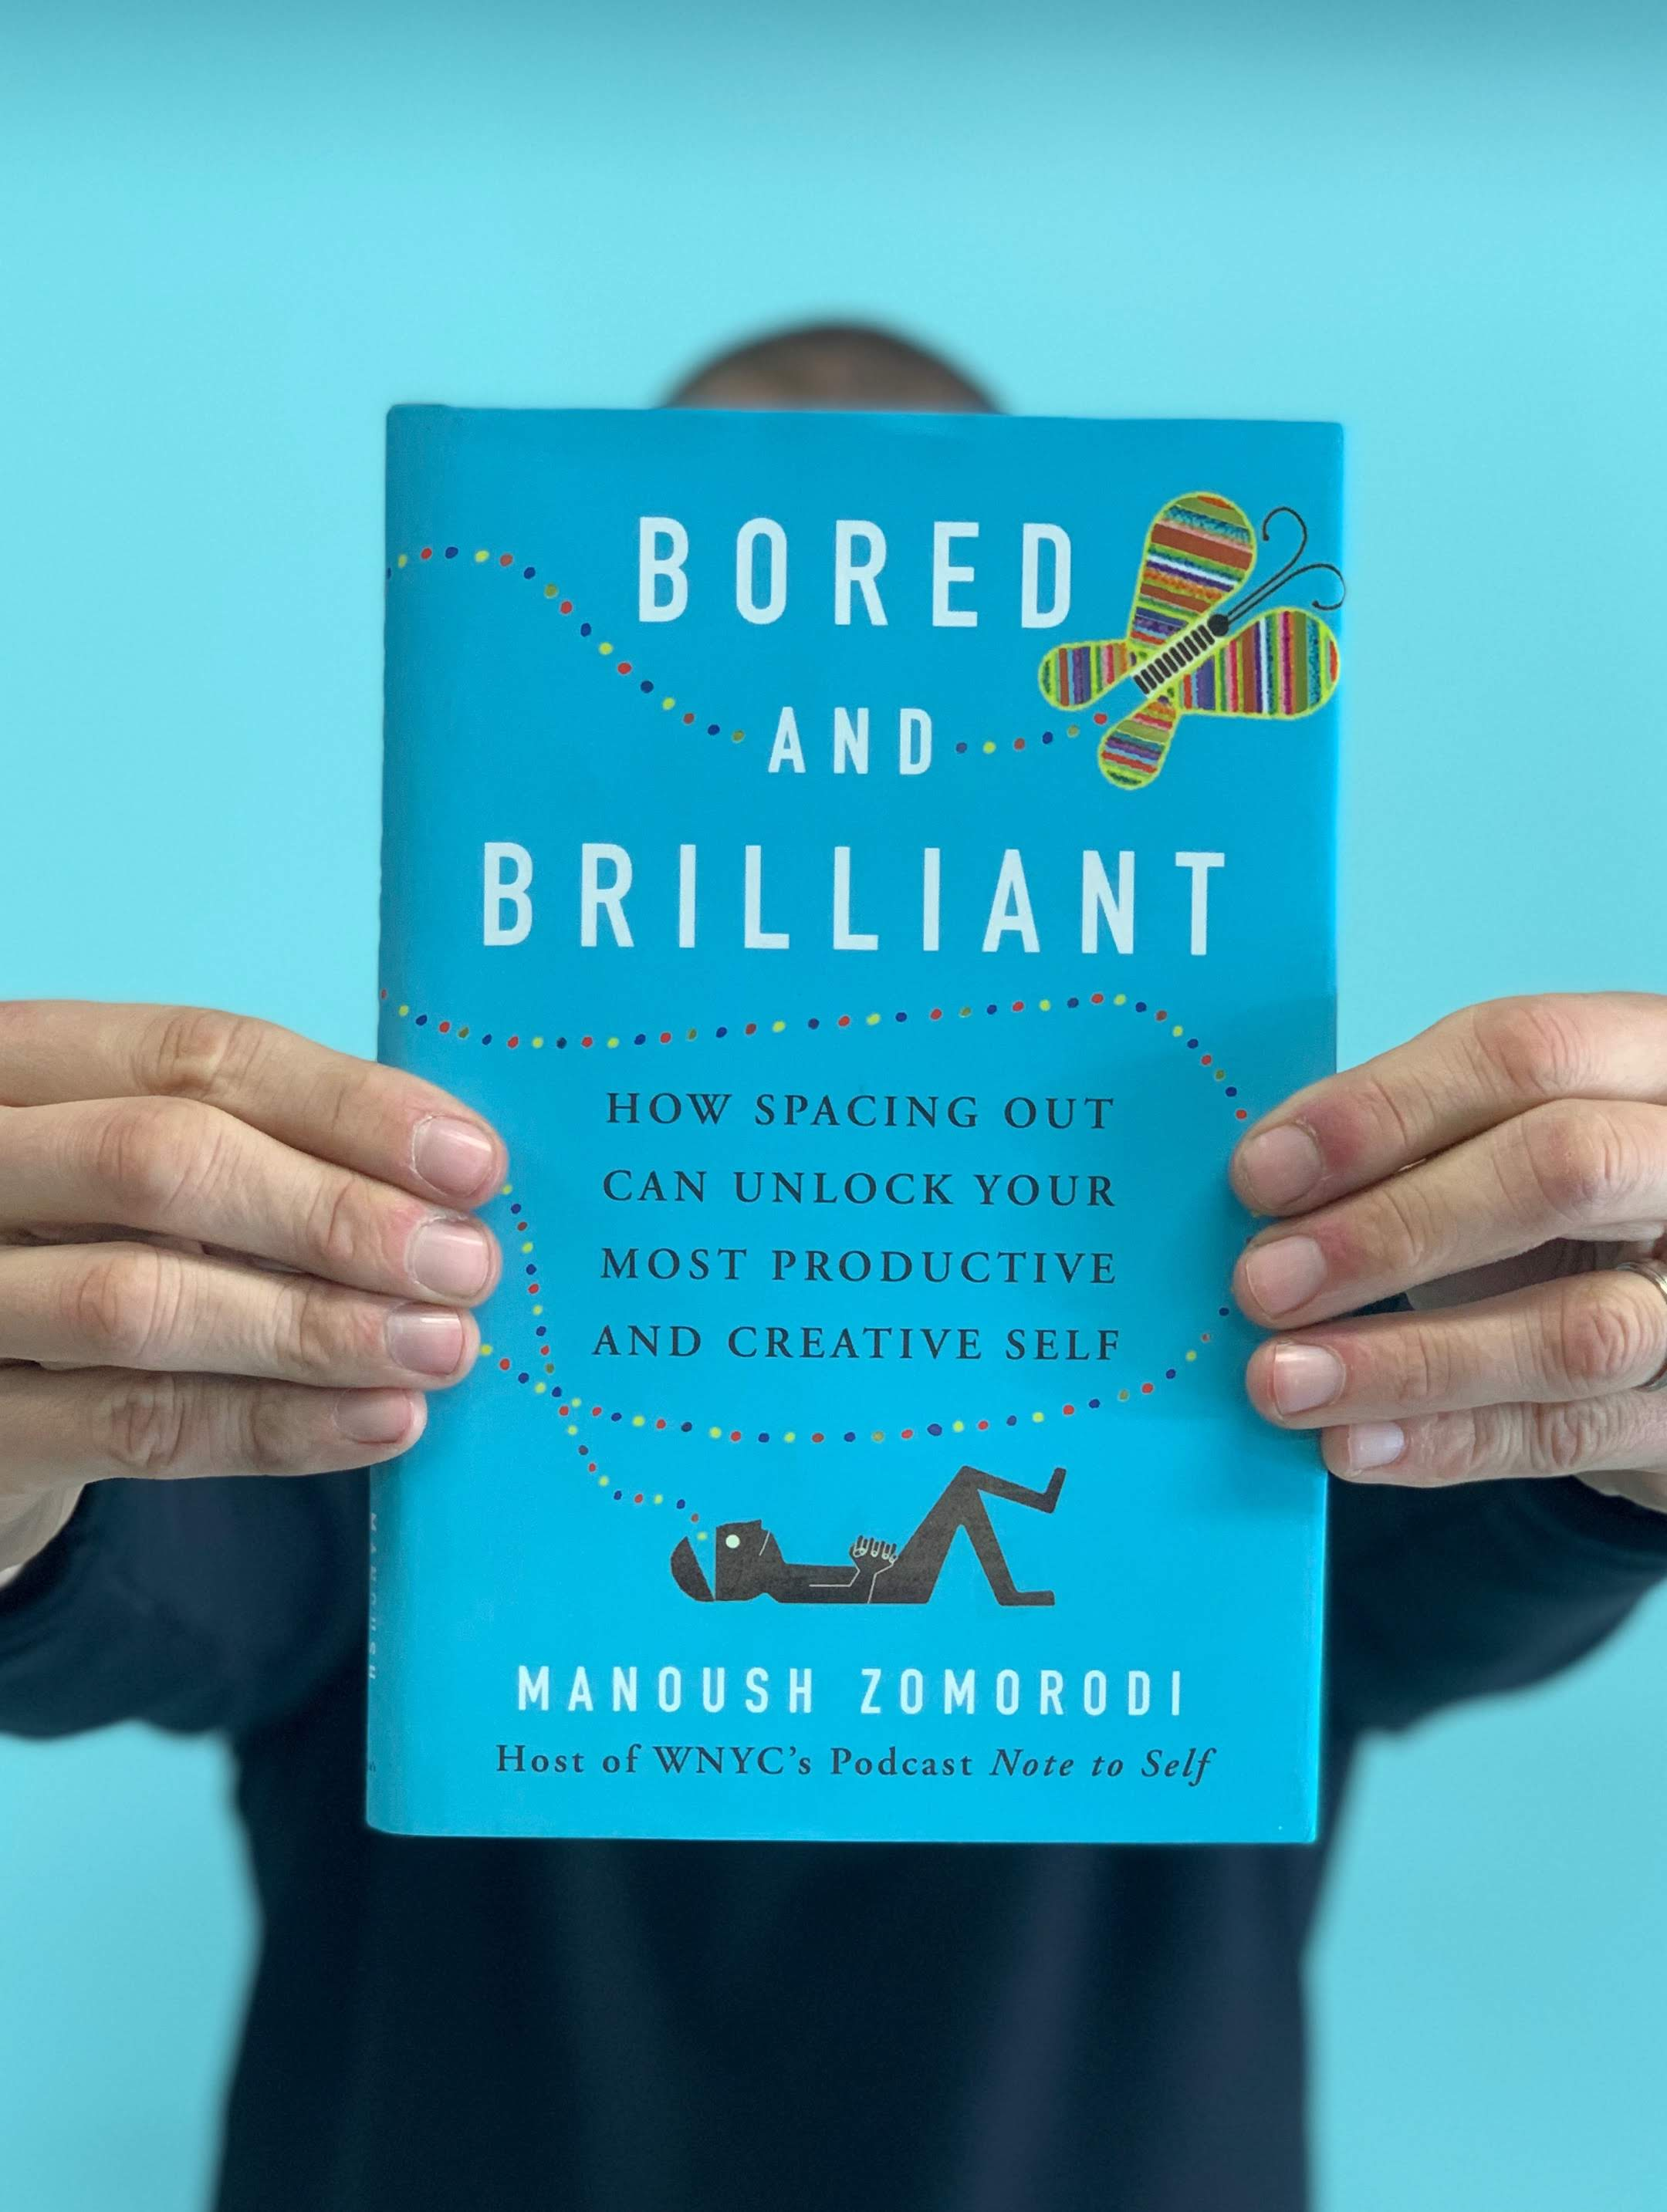 - Bored and Brilliant by Manoush ZomorodiIf you're looking to take a few steps back from the tech and over-scheduled world that has become our lives, this book is a perfect place to begin. It's in the family with Digital Minimalism by Cal Newport and Essentialism by Greg McKeown. Zomorodi makes the case for a life with more downtime or time less involved in distraction. Boredom is one of the most underutilized at our disposal because we've come to believe it is something we are entitled to vanquish. Well, think again. Boredom is back! This provides examples and exercises for those who are interested in a phase one detox from the digital world. Written from an impassioned perspective imploring a more connected positive life, Zomorodi crams gold into less than two hundred pages.